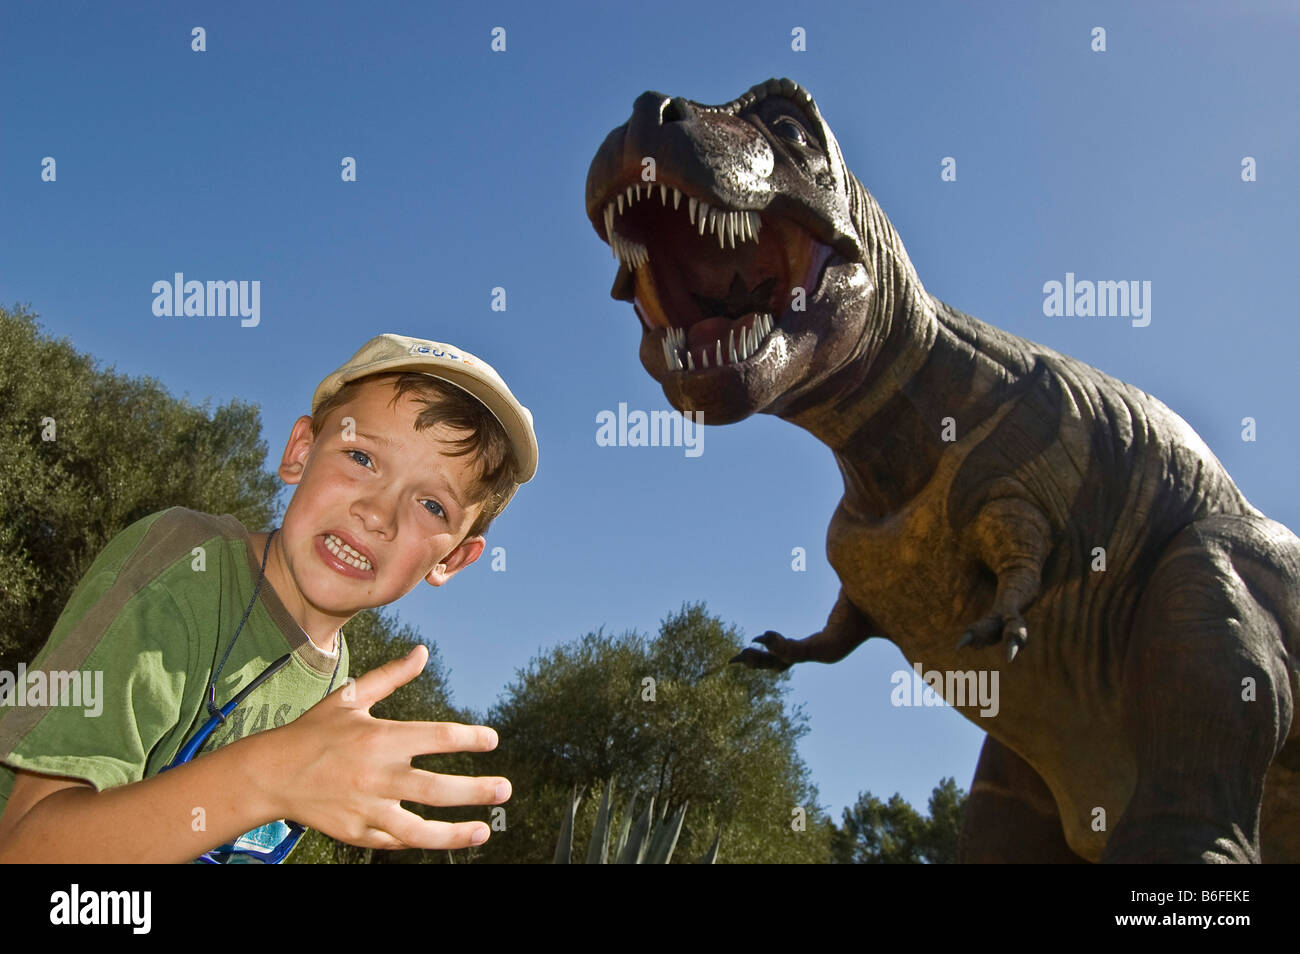 Boy with a dummy of a Dinosaur (Tyrannosaurus Rex), Majorca, Balearic Islands, Spain, Europe - Stock Image